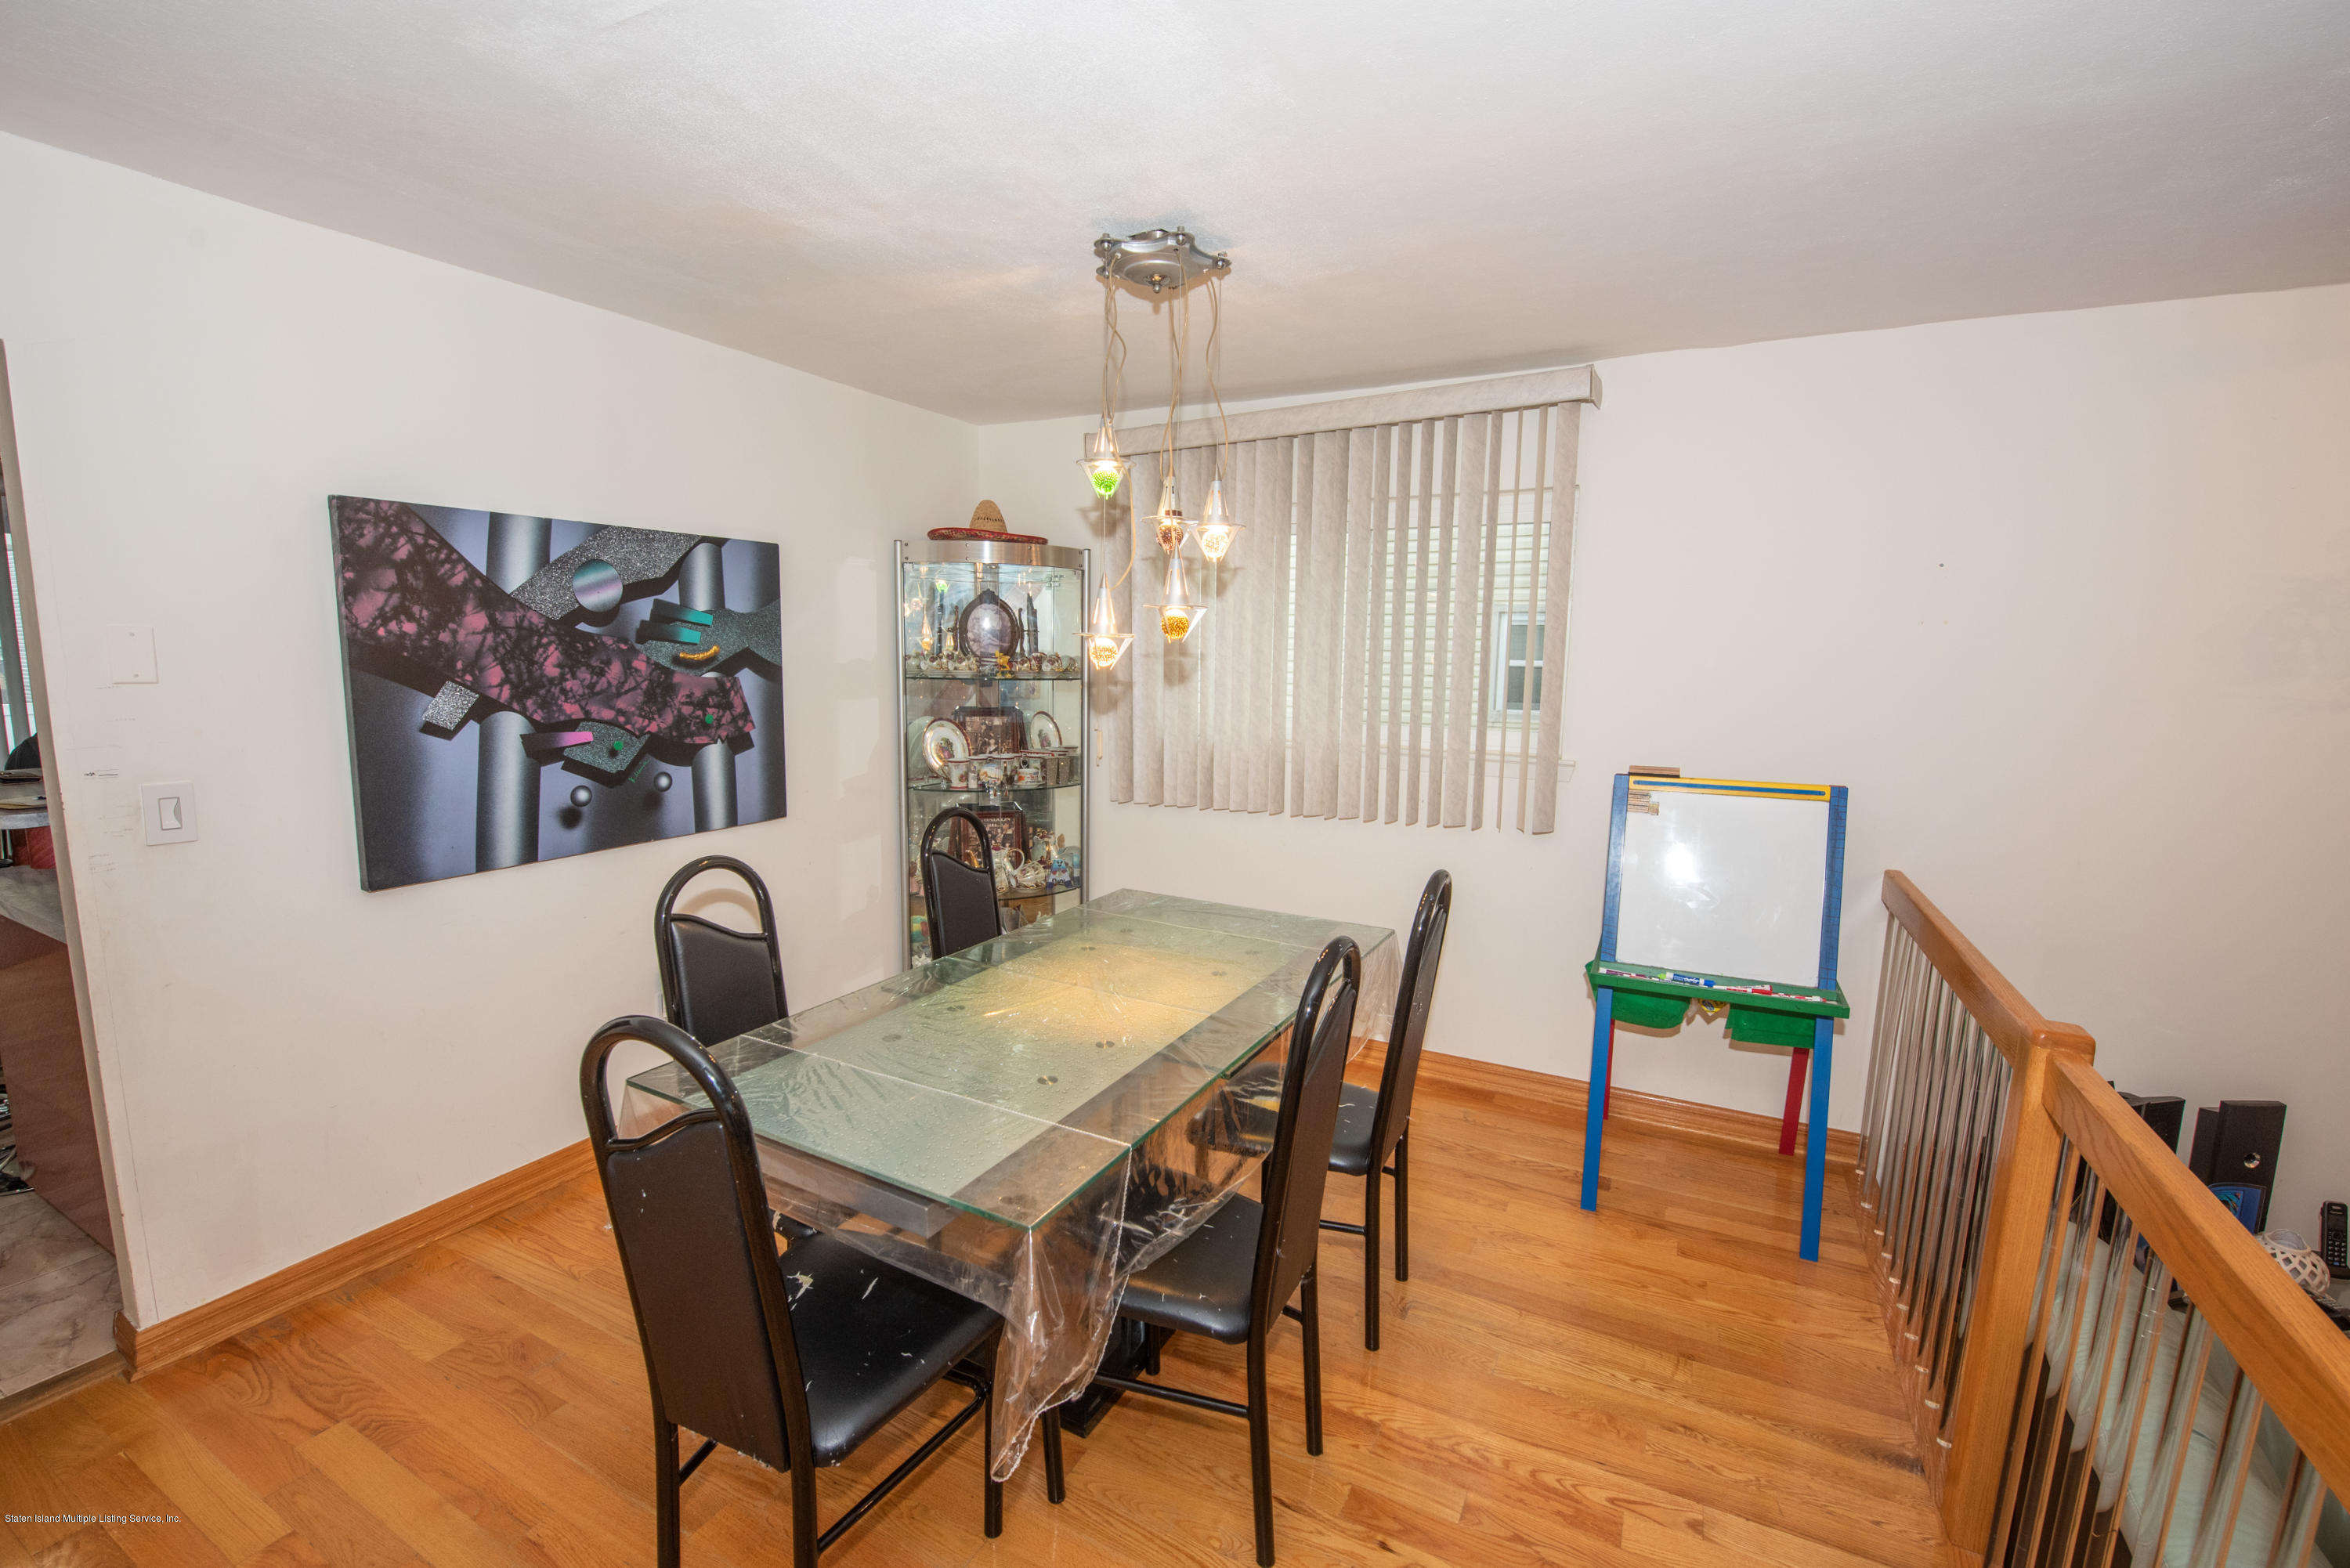 Single Family - Semi-Attached 76 Mcveigh Avenue  Staten Island, NY 10314, MLS-1133370-9